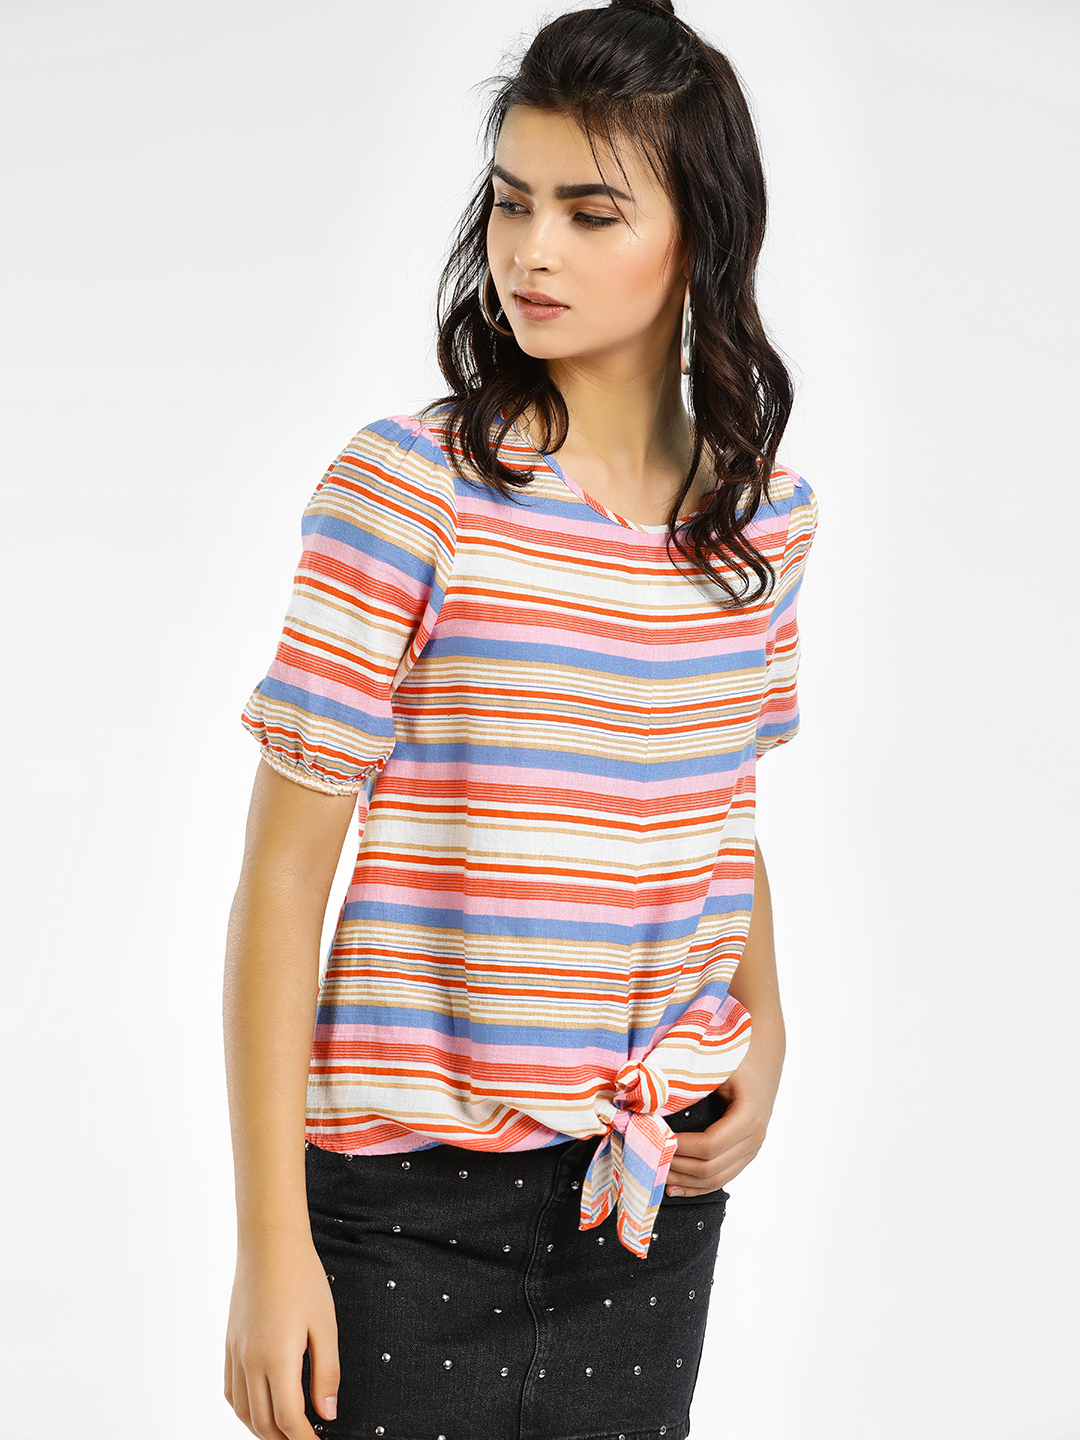 Vero Moda Multi Striped Front Knot Top 1